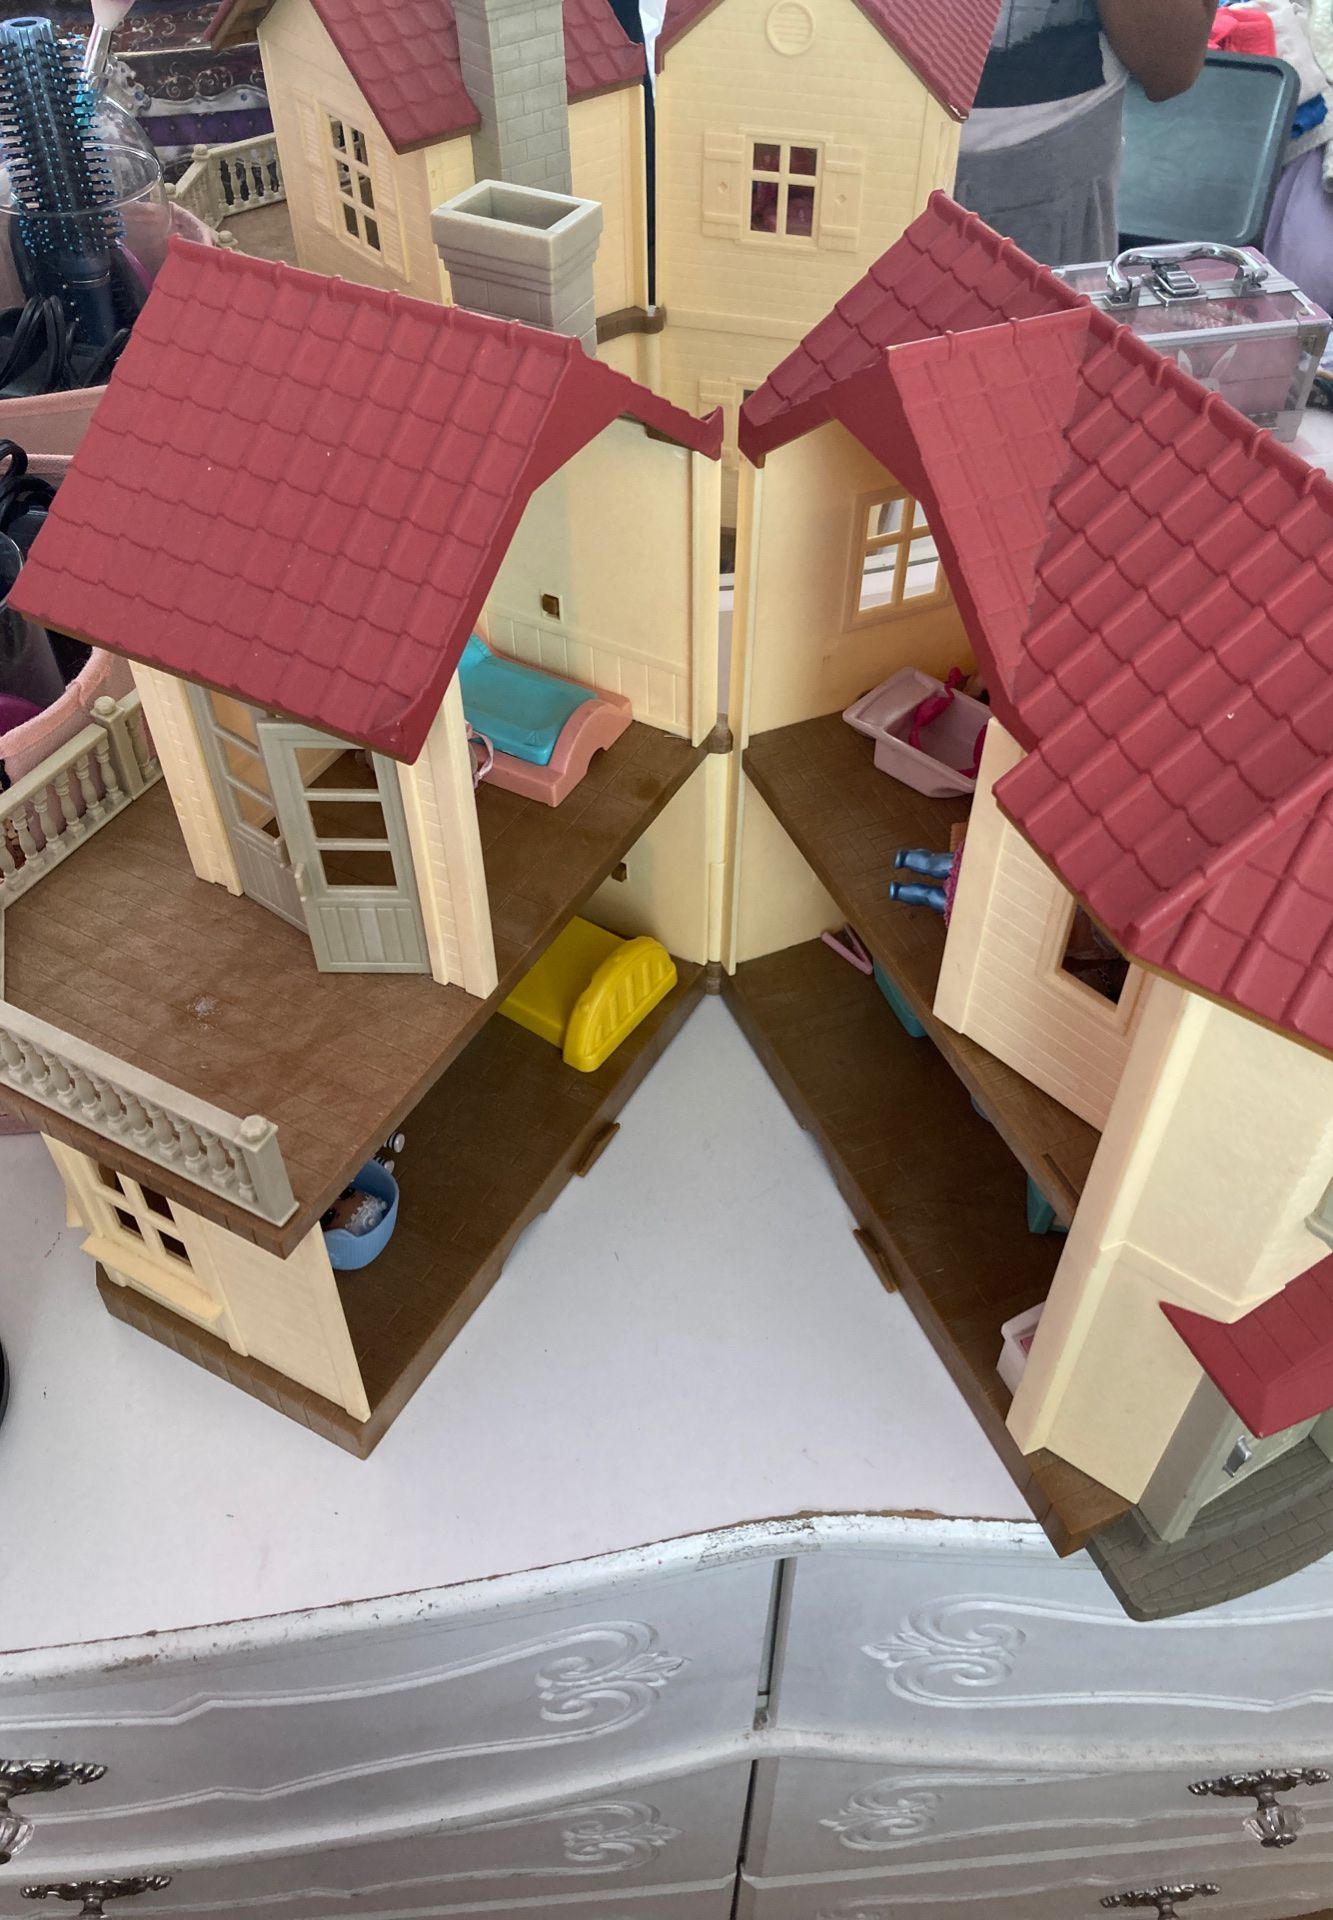 Calico Critters Town house